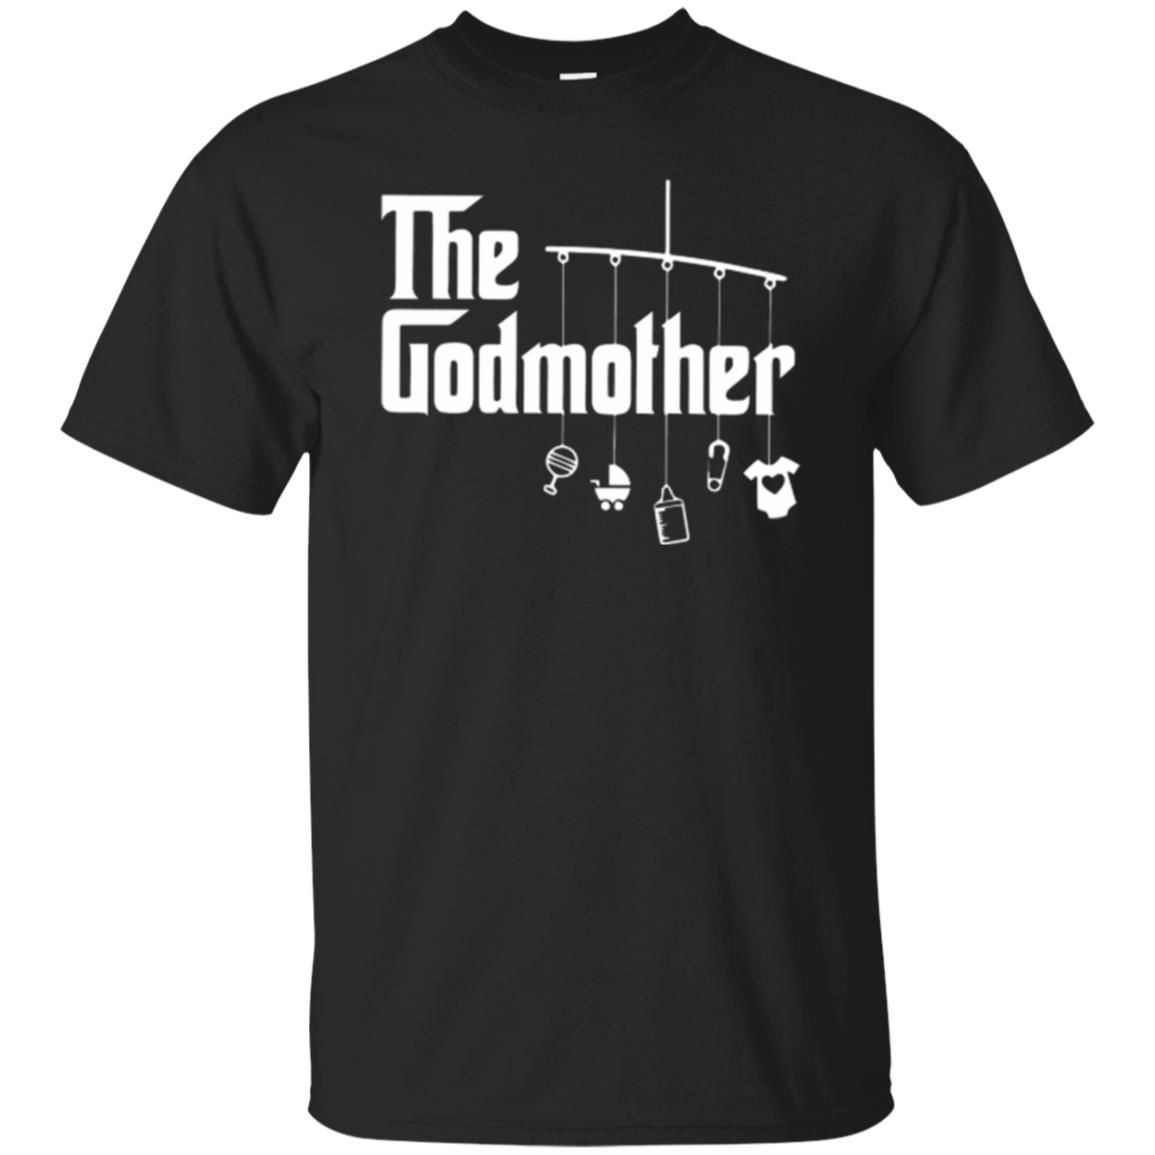 The Goddaughter Kids Youth T-Shirt Tee Godfather Godmother Funny Clever Spoof